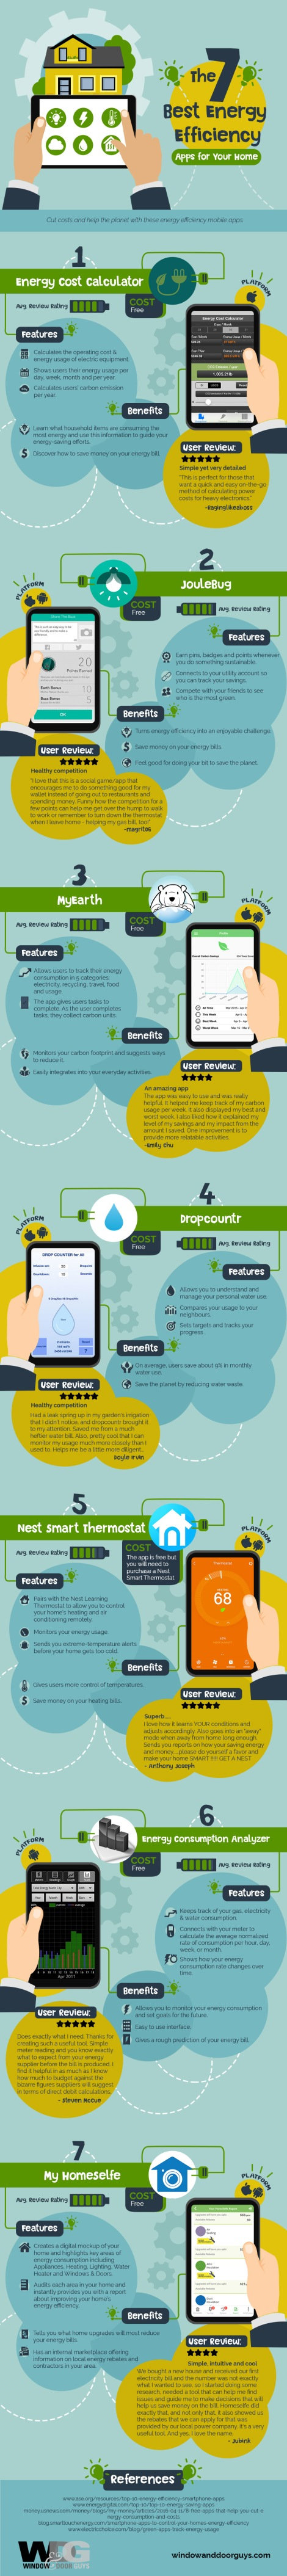 The 7 Best Energy Efficiency Apps for your Home [Infographic] | ecogreenlove